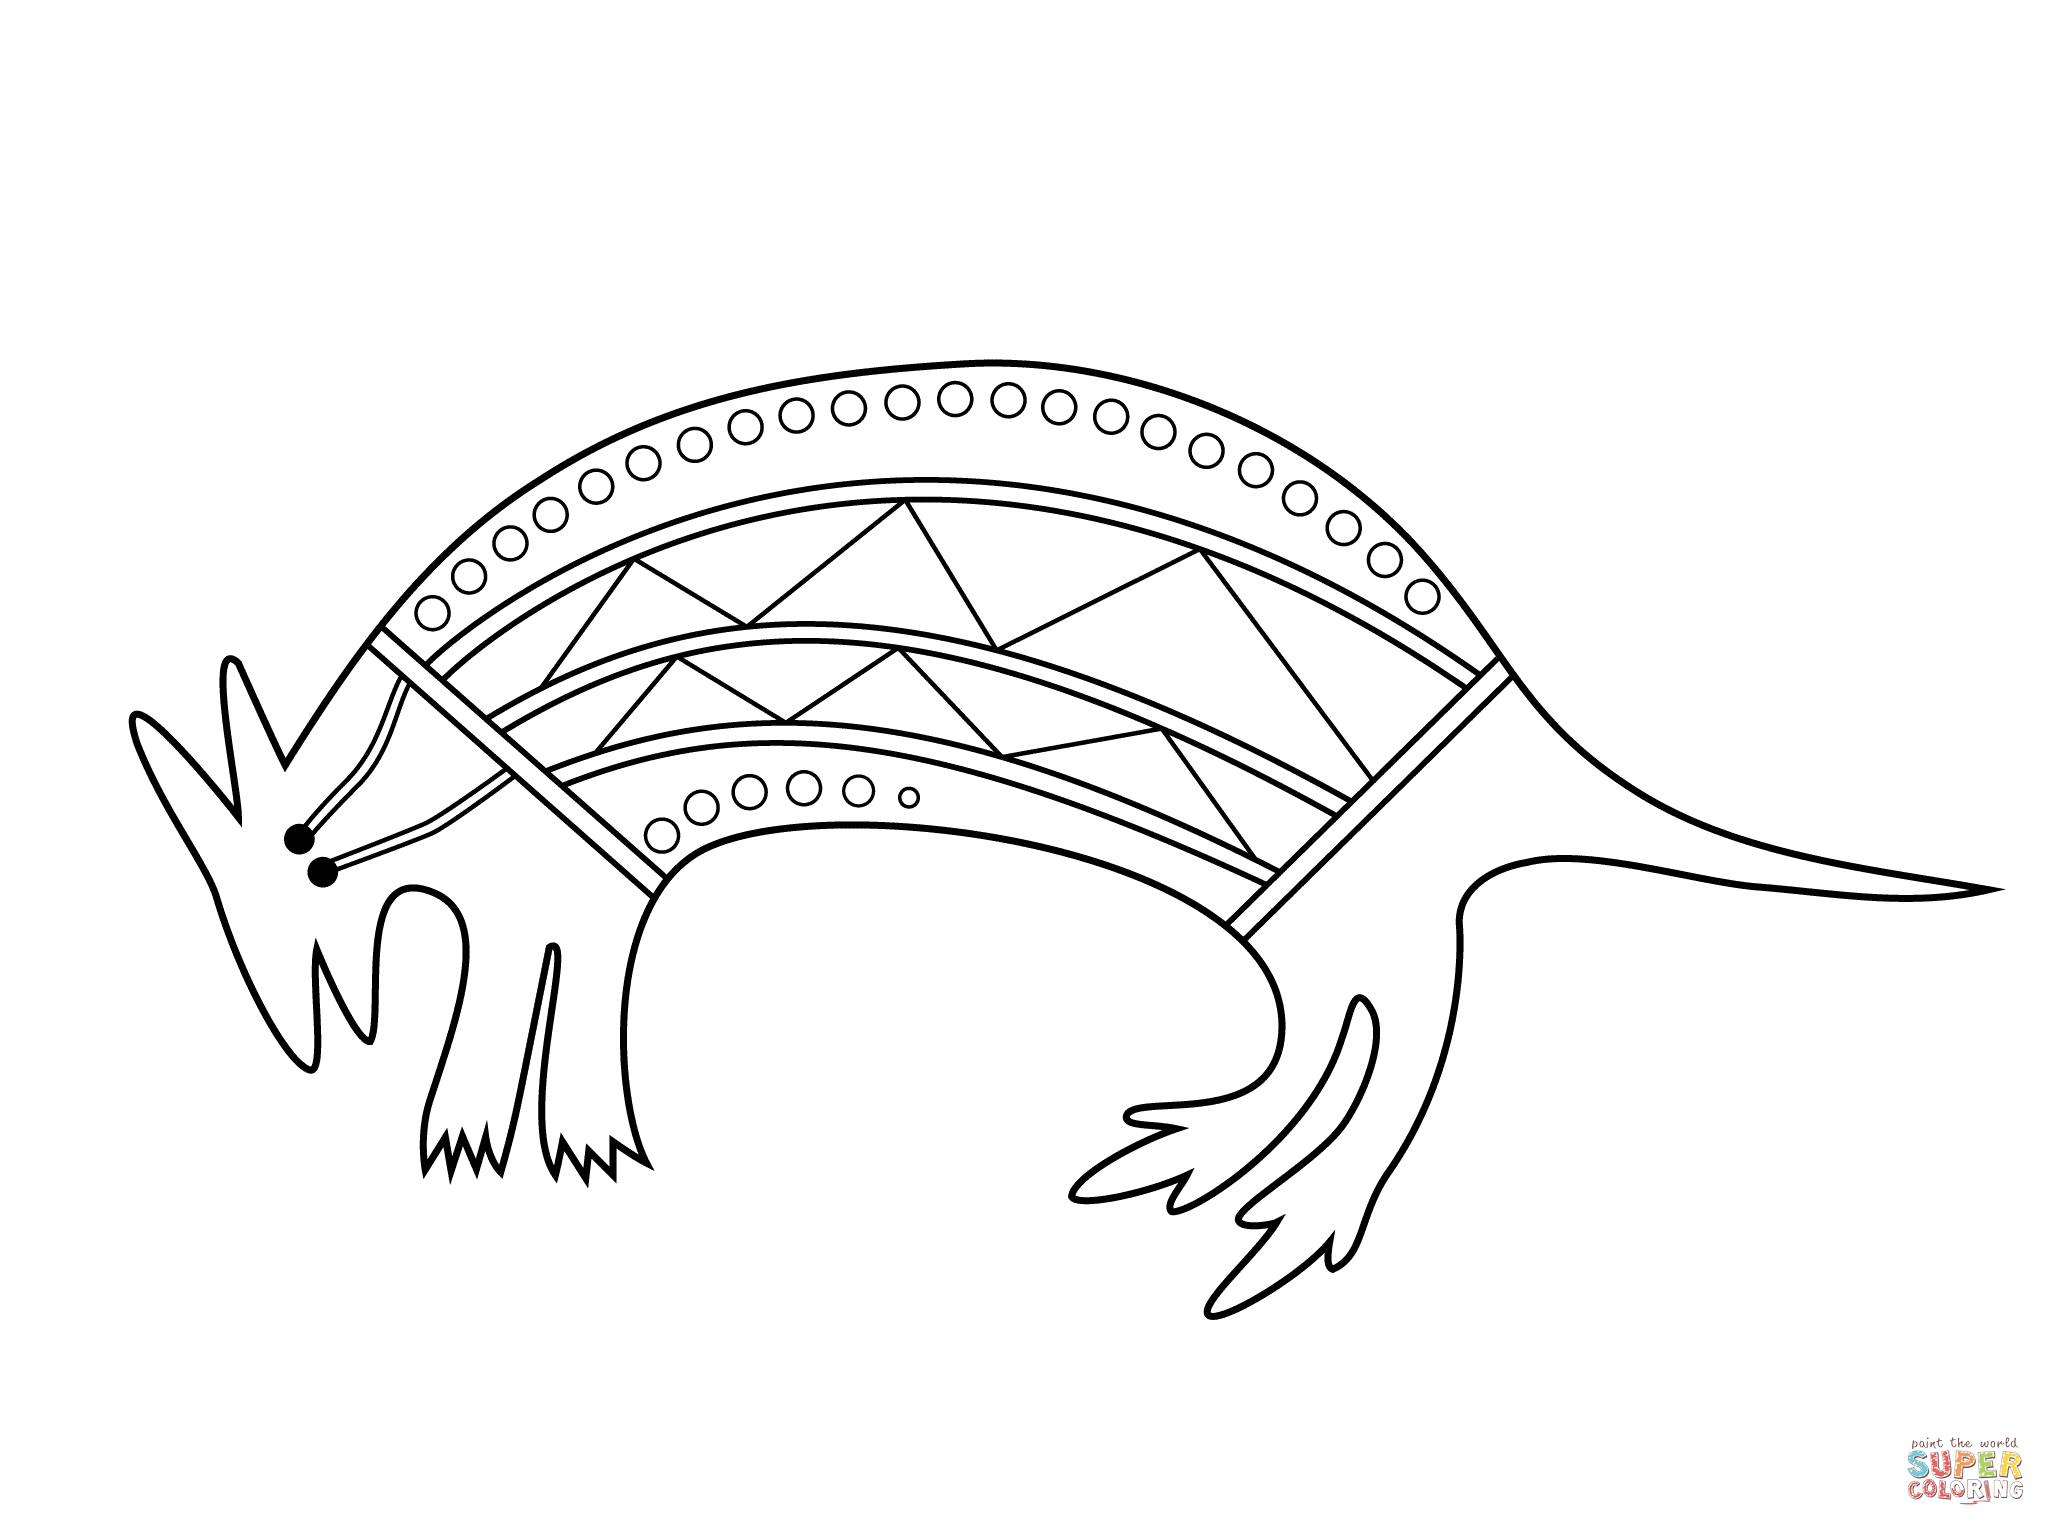 Aboriginal Art Coloring Pages | Free Coloring Pages - Free Printable Aboriginal Colouring Pages